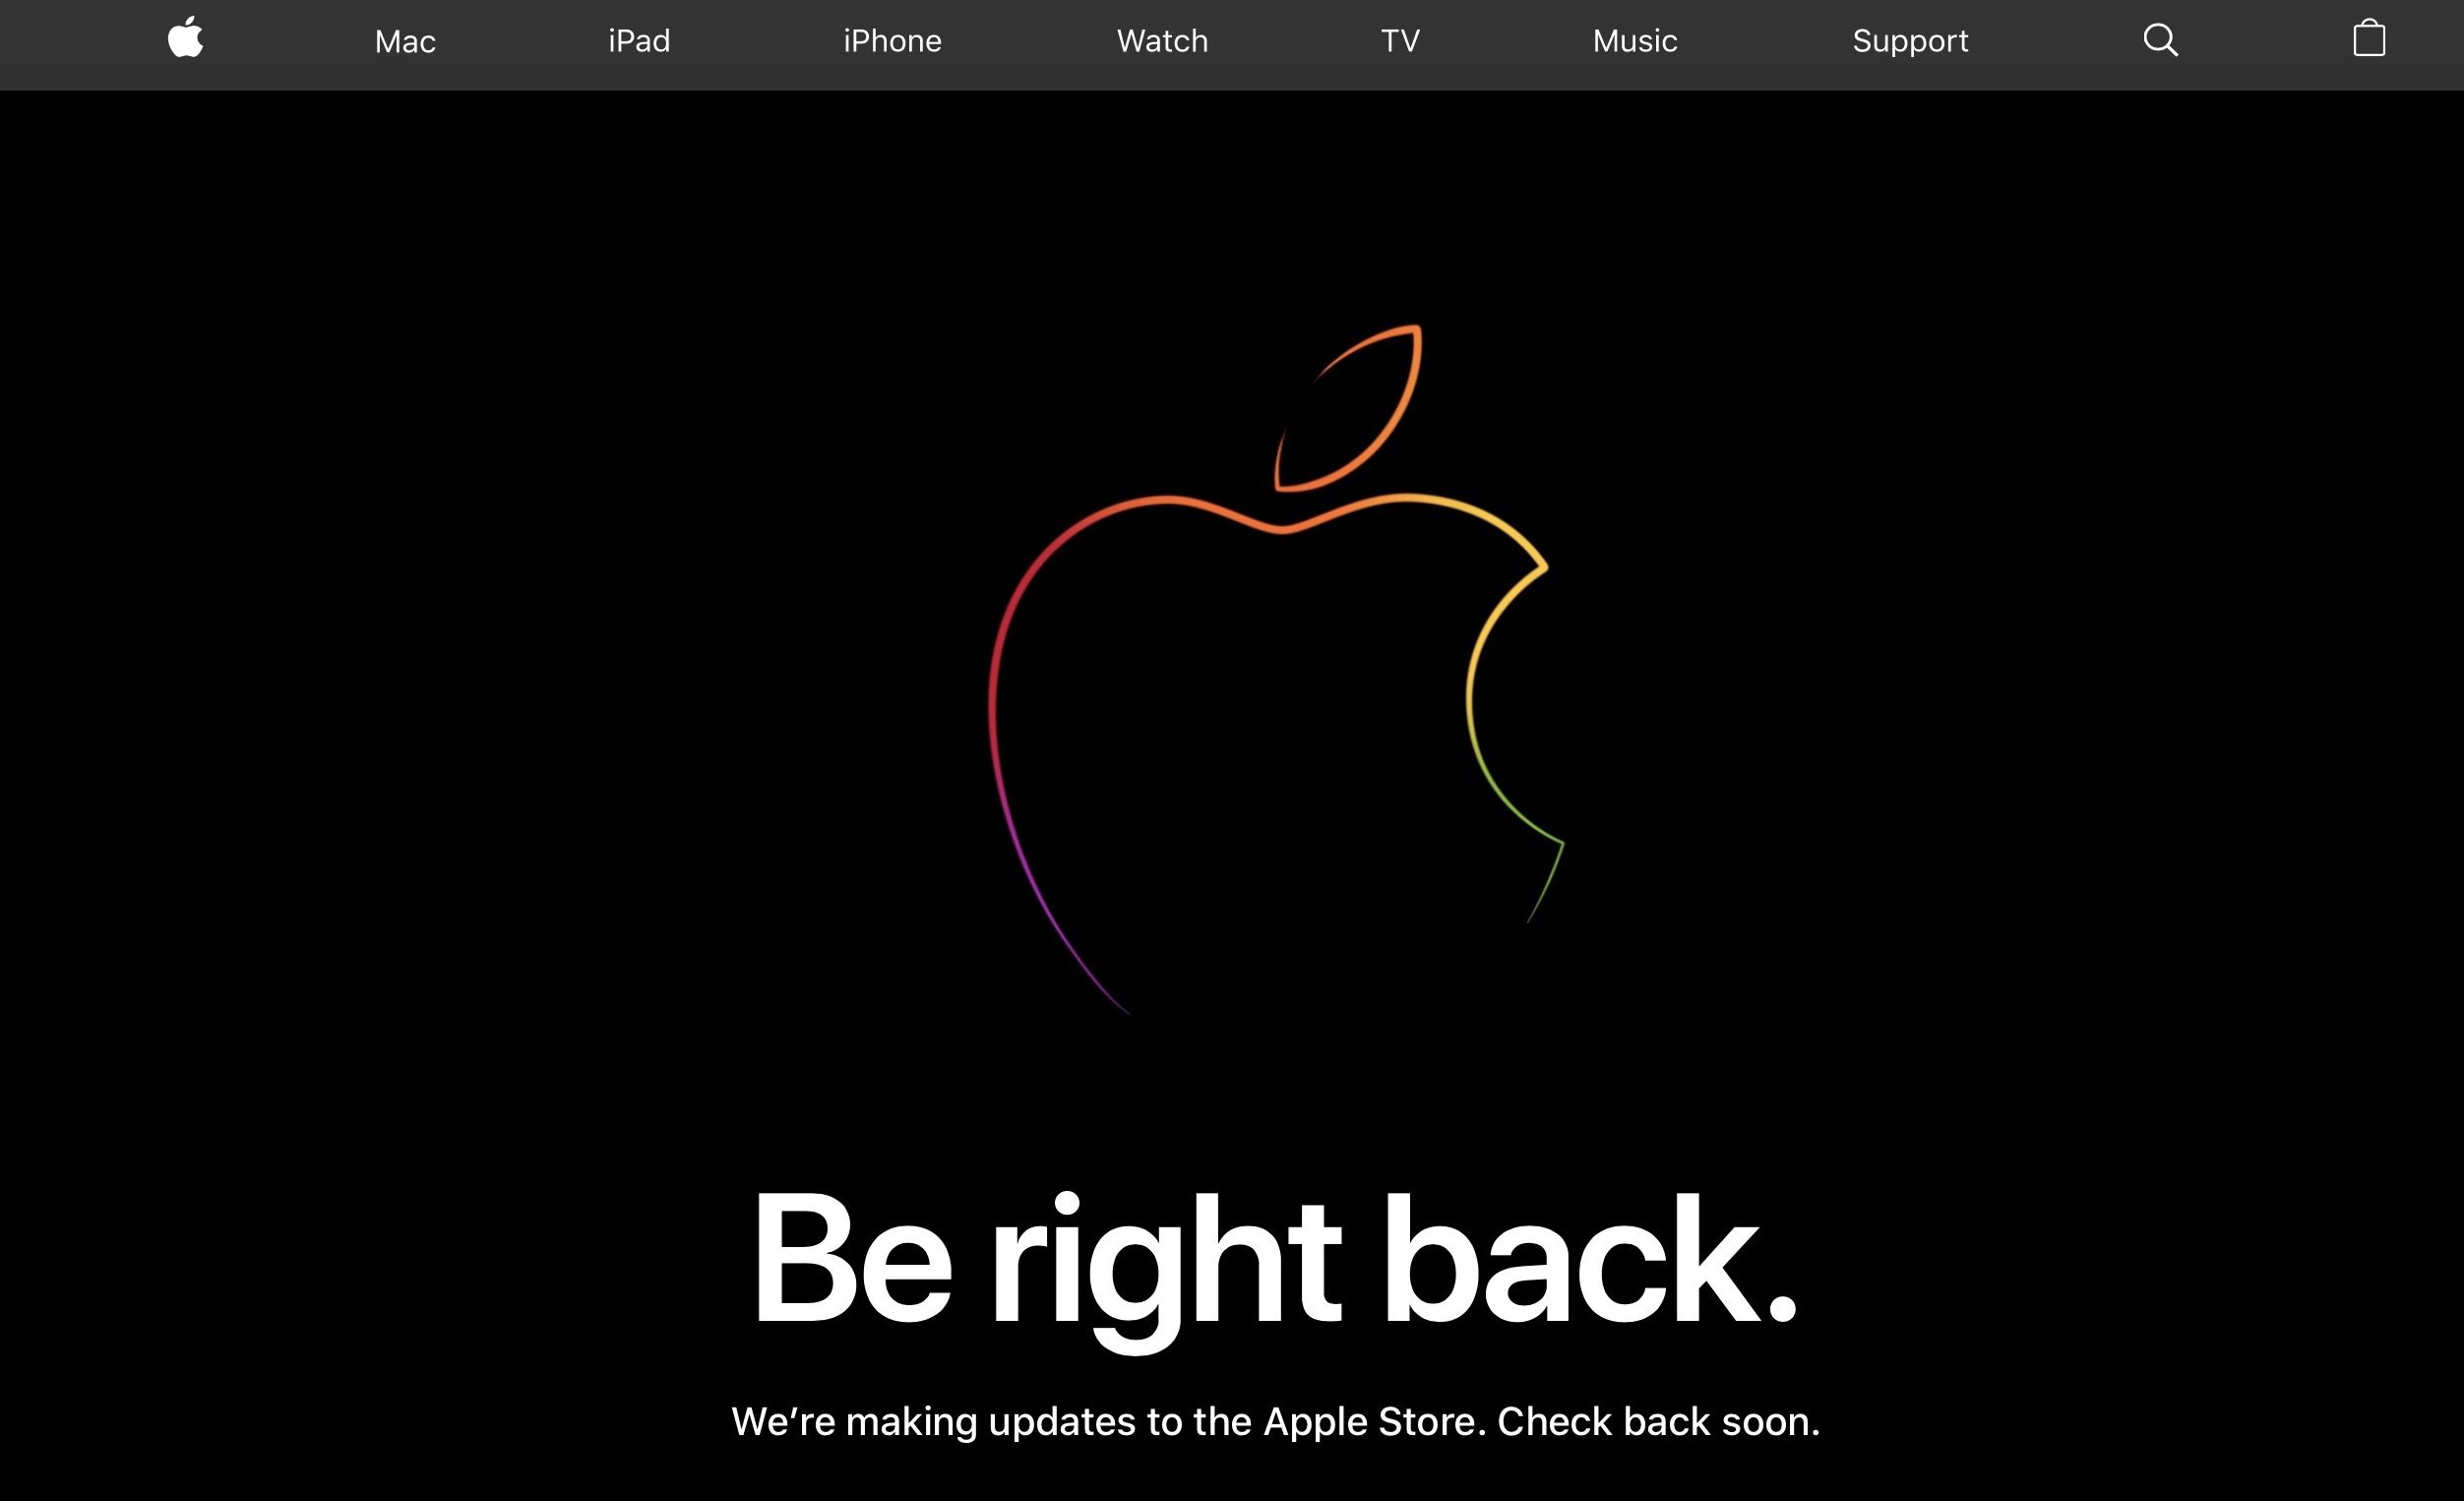 Apple has closed the online store before the presentation